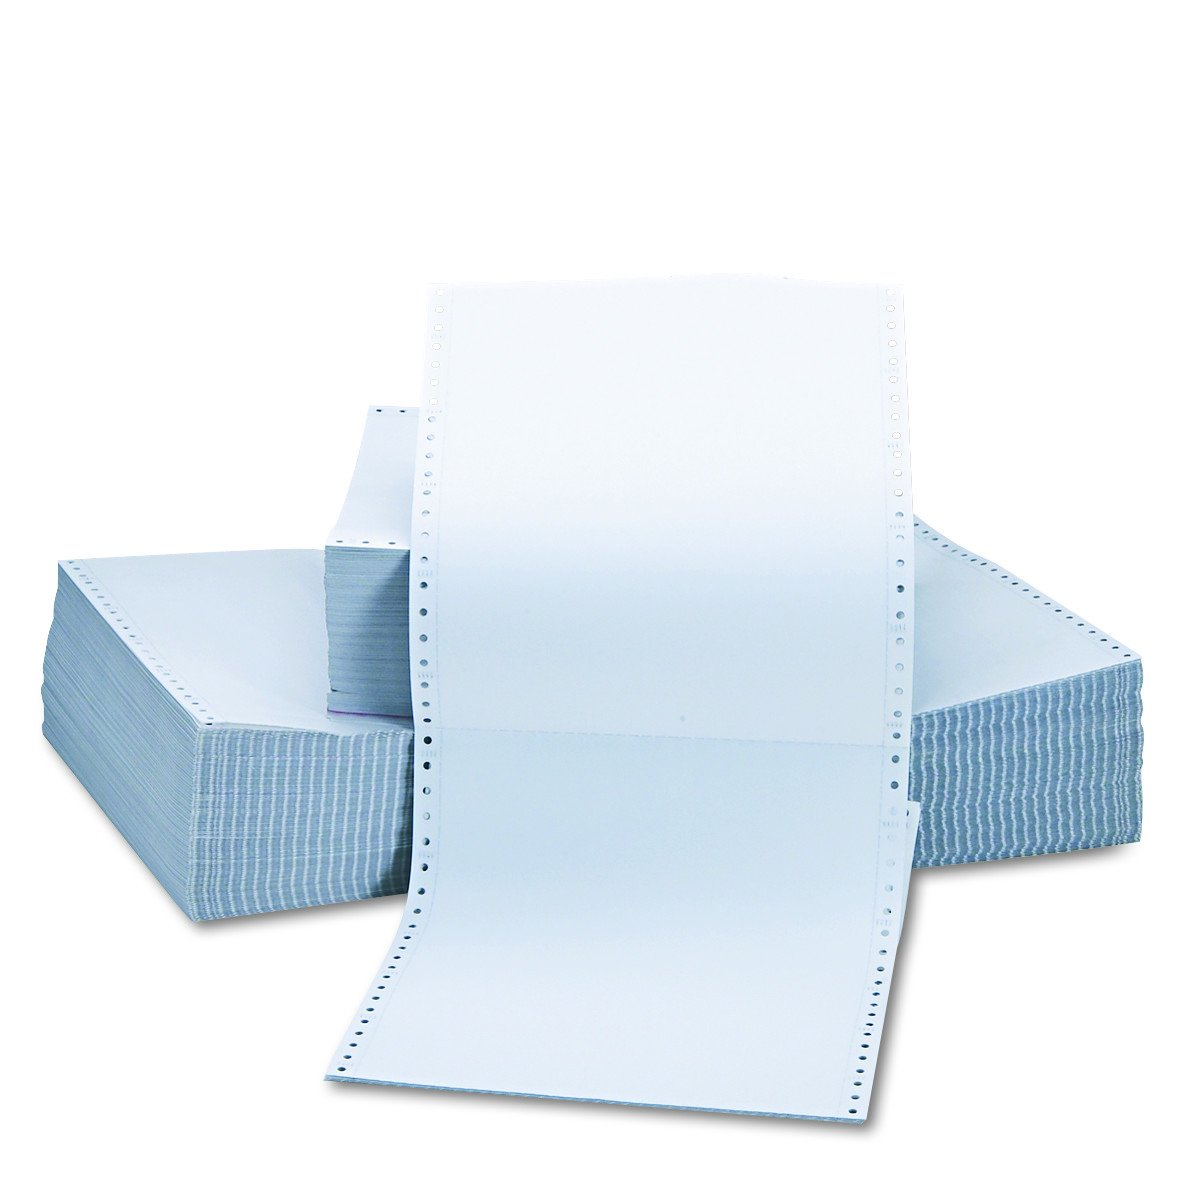 Universal Two-Part Carbonless Paper, 15lb, 9-1/2'' x 11'' , Perforated, White, 1650 Sheets (15703)